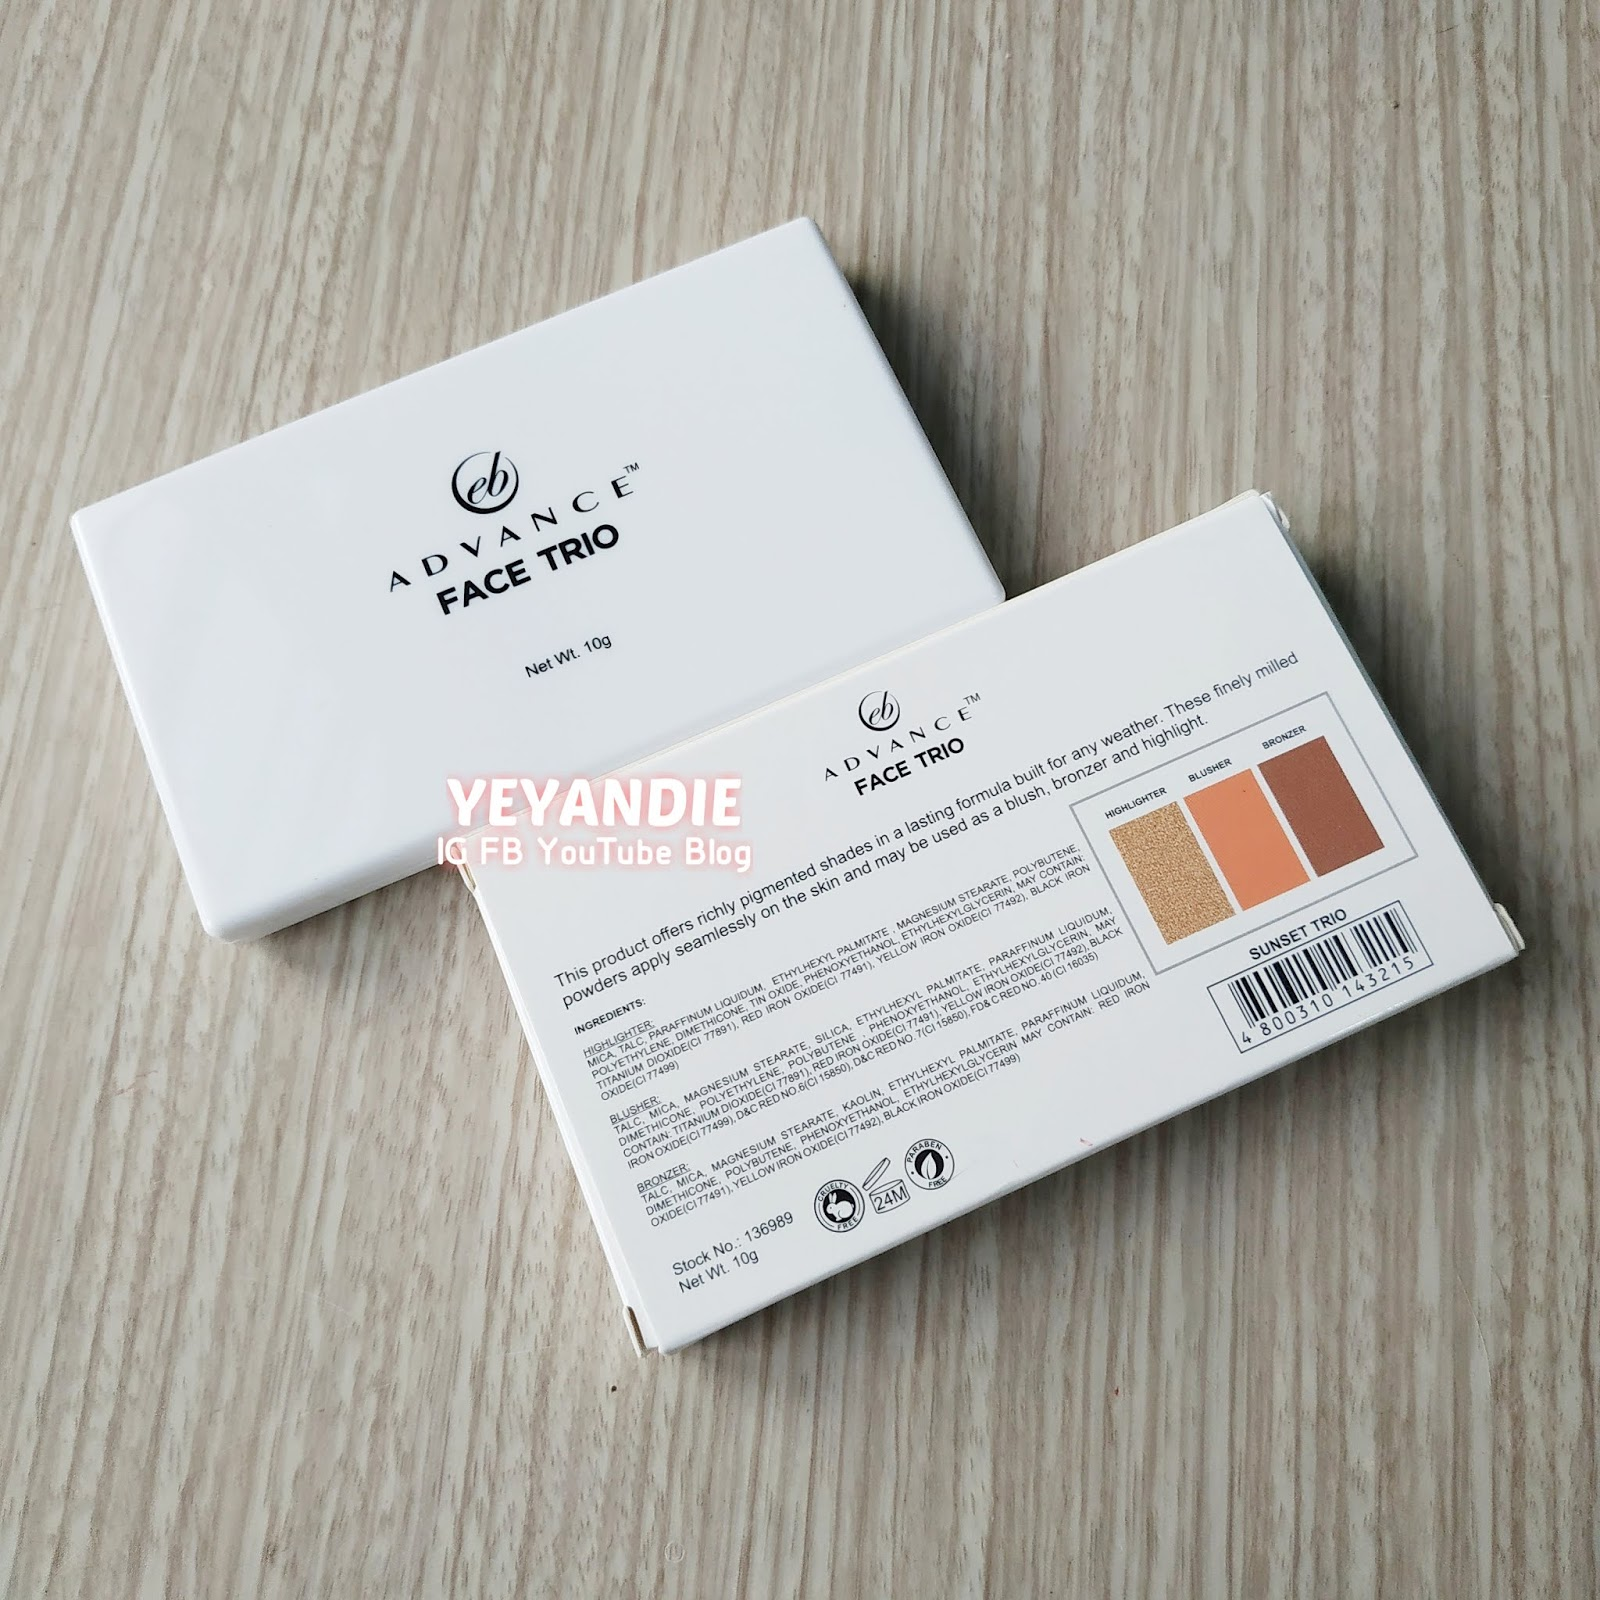 YeyAndie Blog: EB Advance Face Trio in Sunset Trio Review